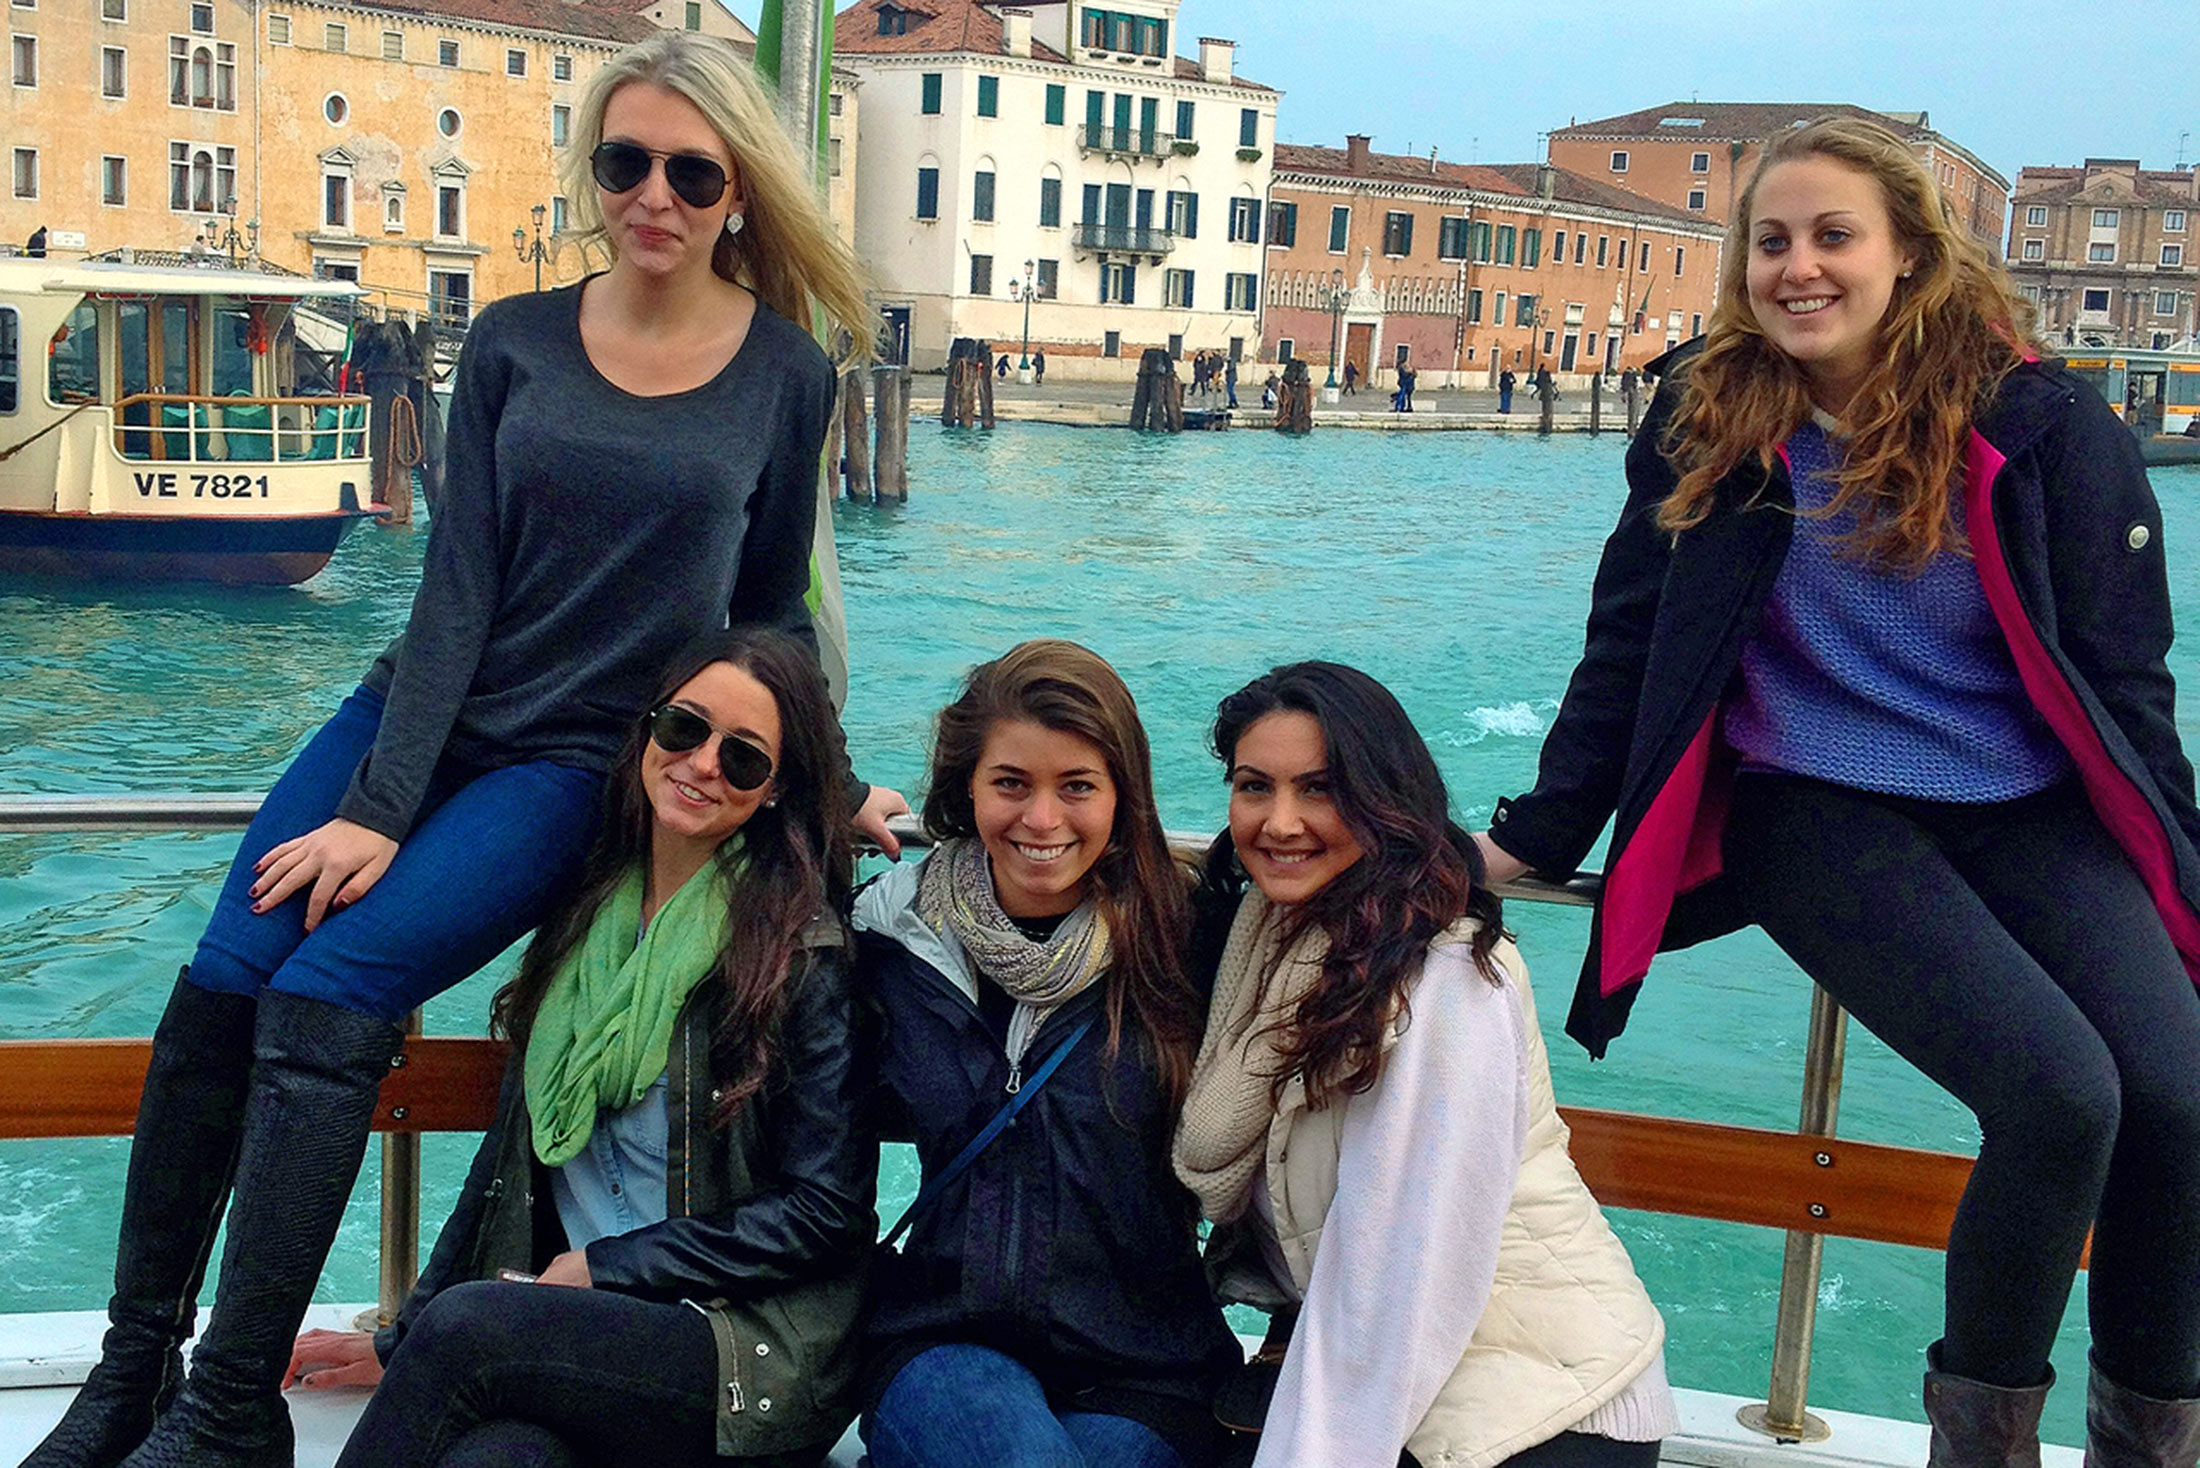 Ud Study Abroad >> Italian Education | University of Delaware